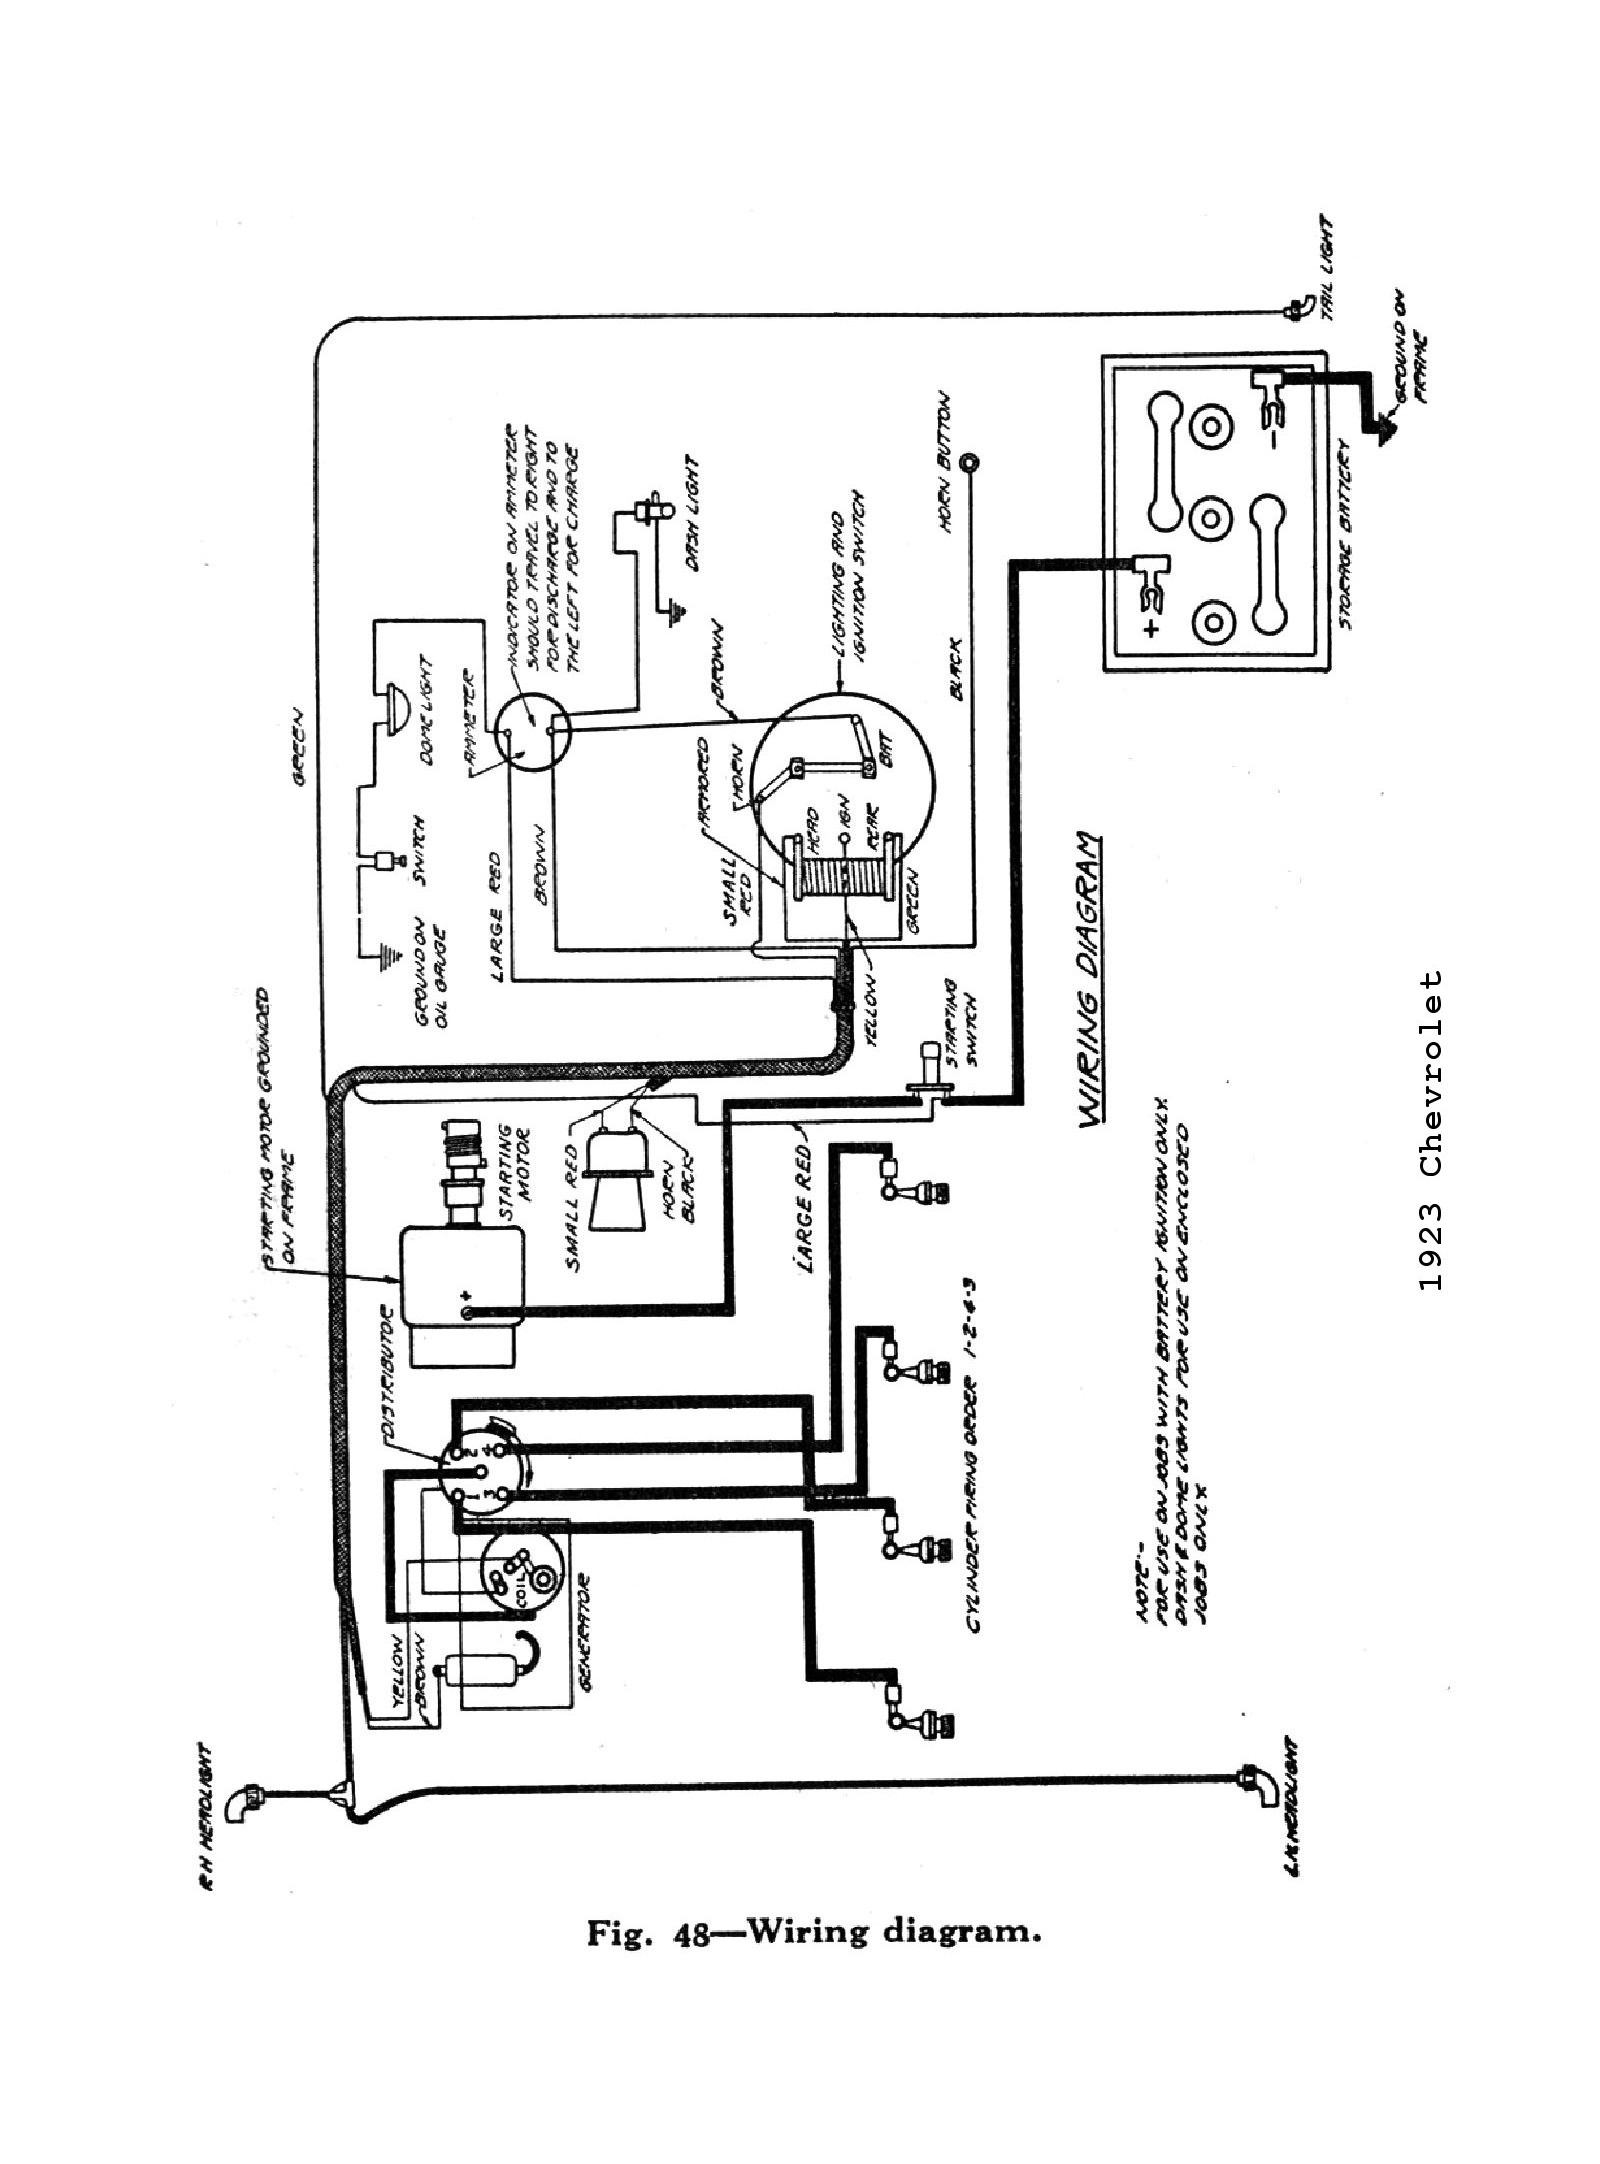 wiring diagram for 1960 gmc truck wiring diagram 2019